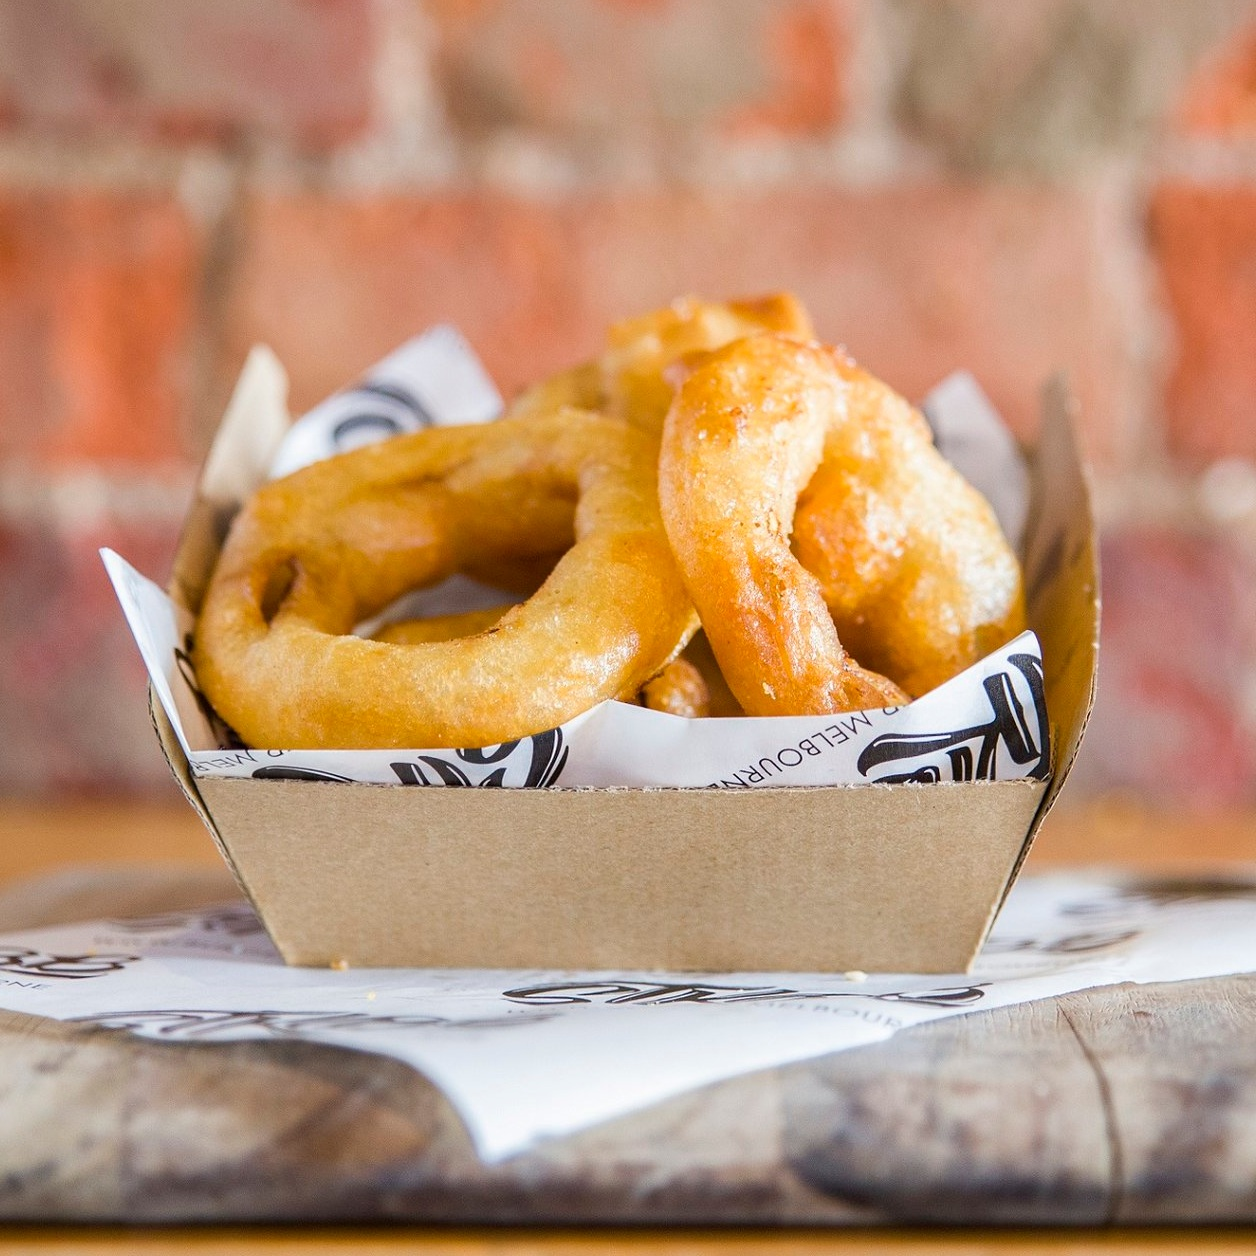 crunchy onion rings - house ketchup$6